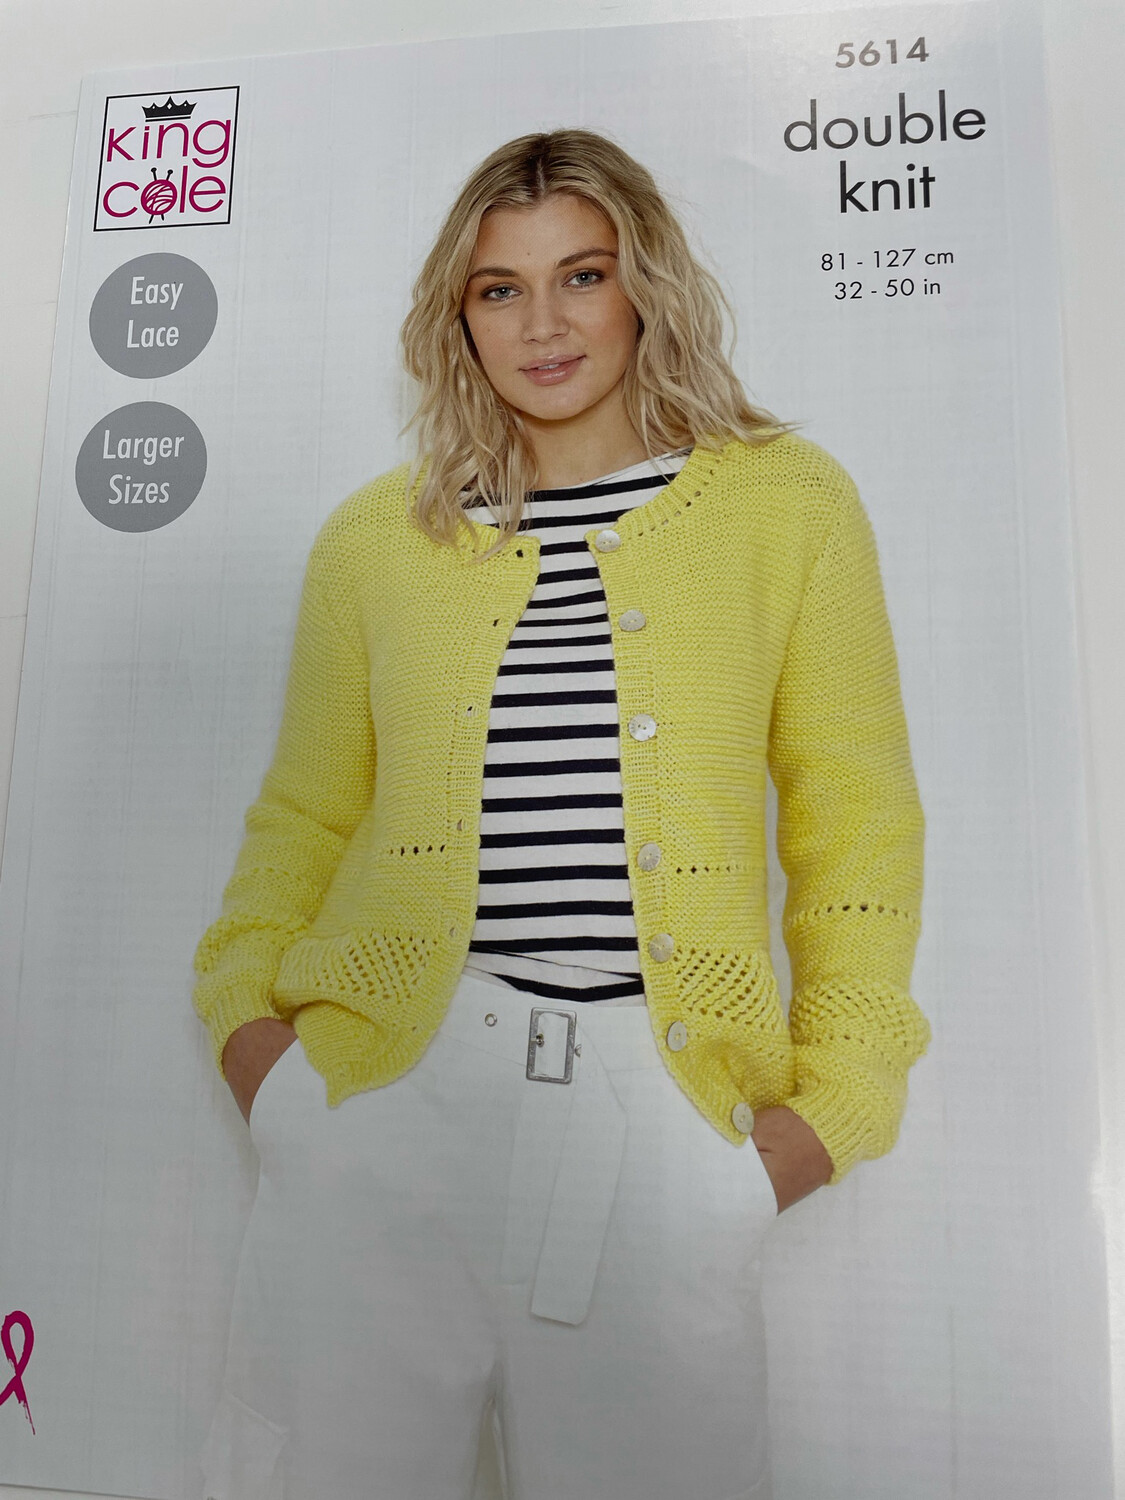 King Cole Sweater and Cardigan Double Knit - Women's Pattern 5614